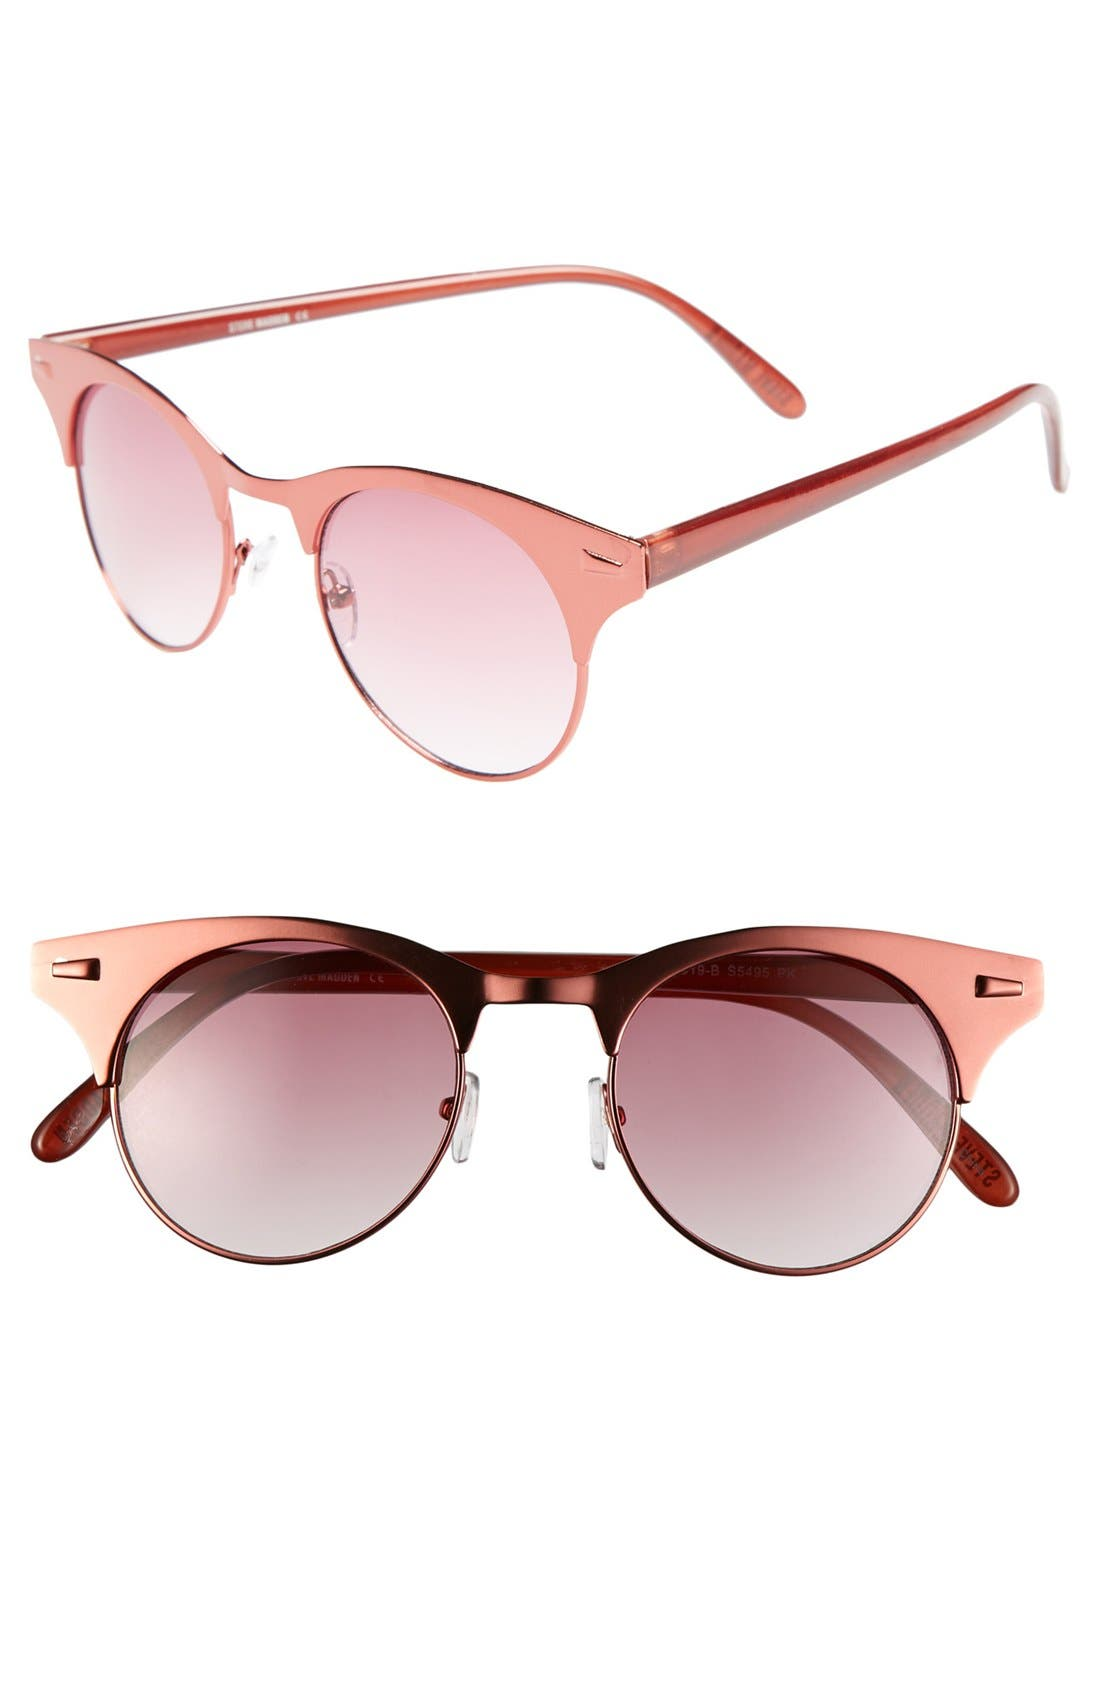 Main Image - Steve Madden 49mm Retro Metal Sunglasses